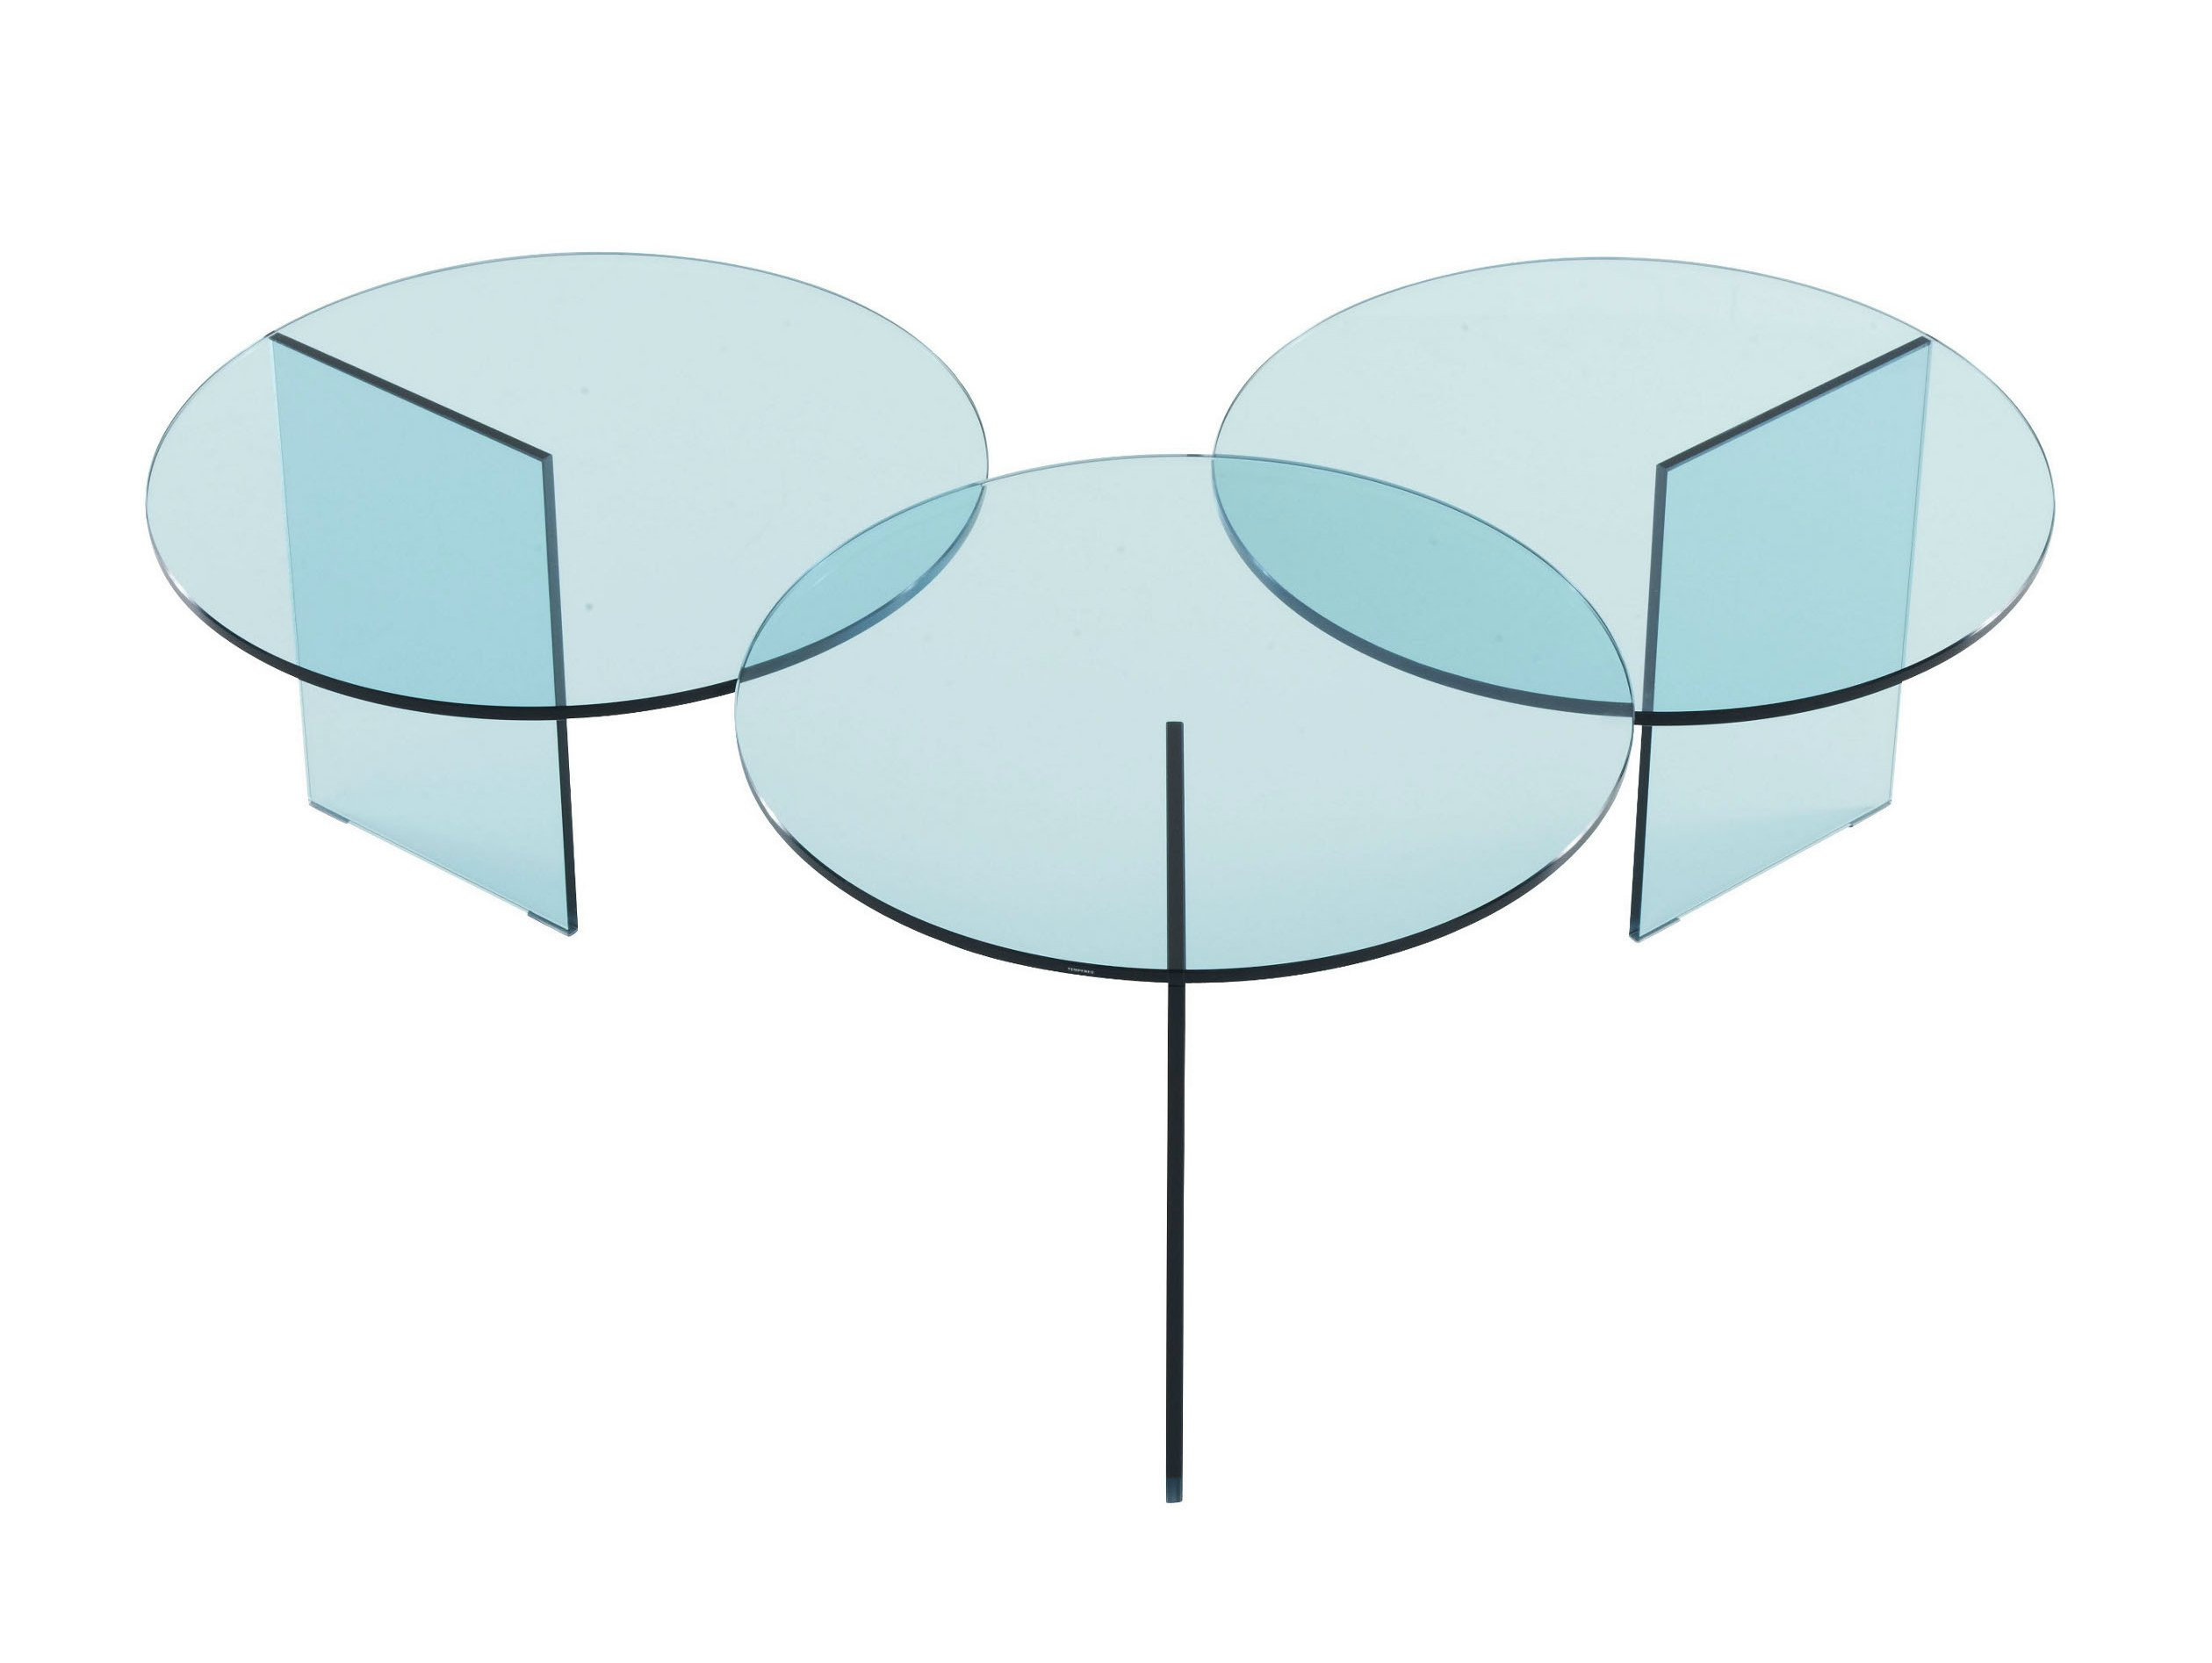 Table basse ronde en verre tremp aoyama by roset italia design no duchaufour lawrance - Table ronde en verre design ...